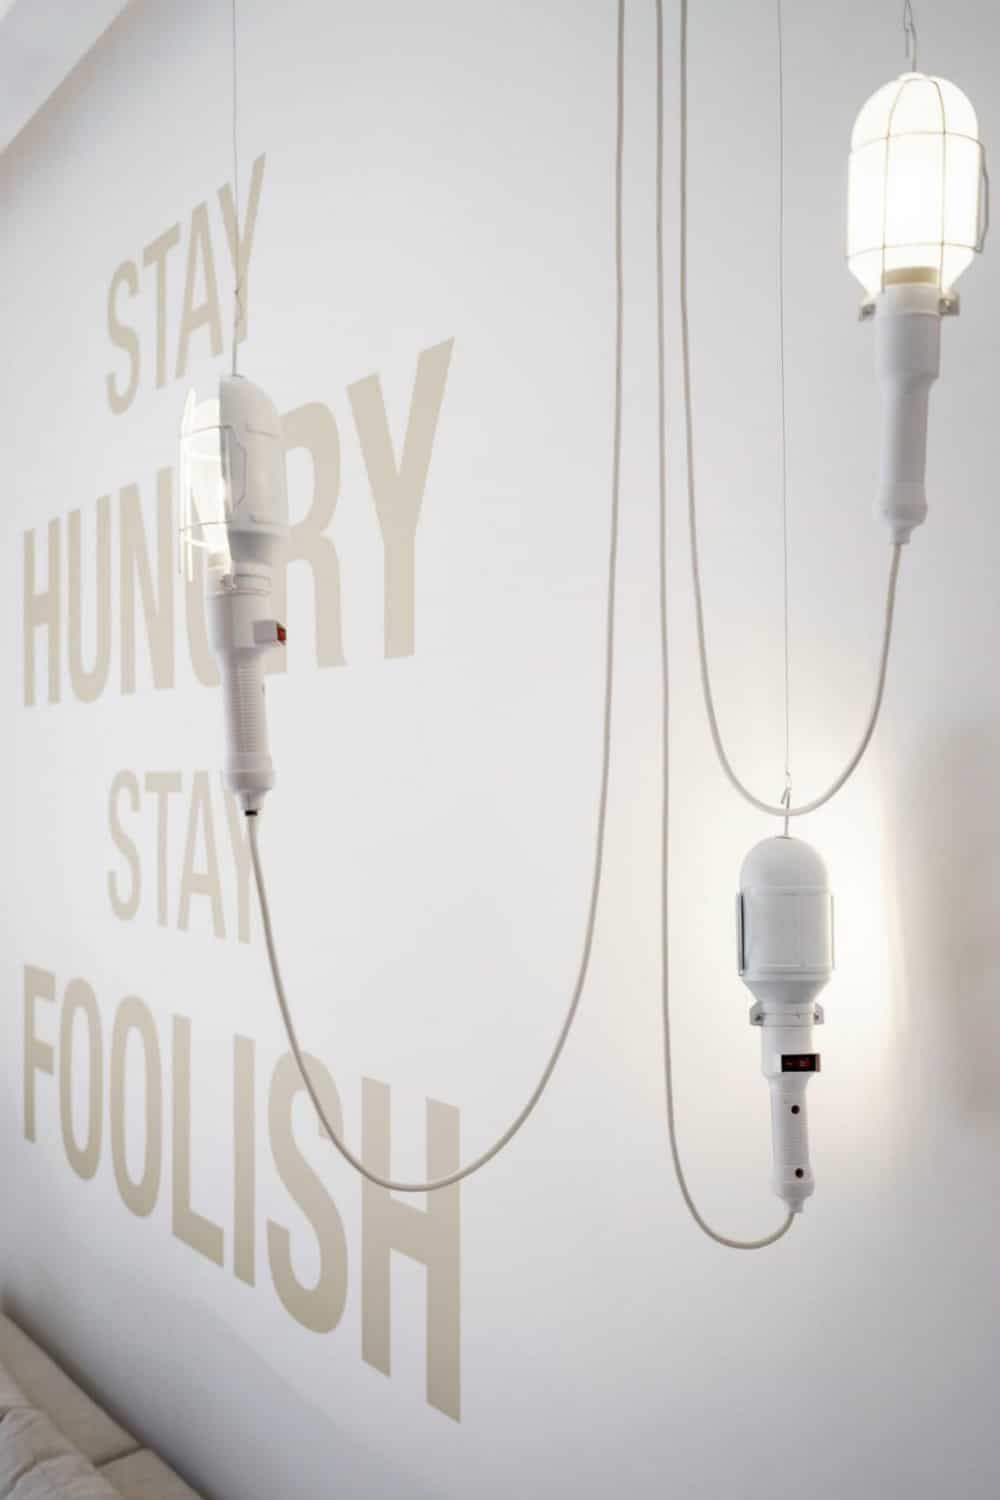 Modern lights brings about unqiue style